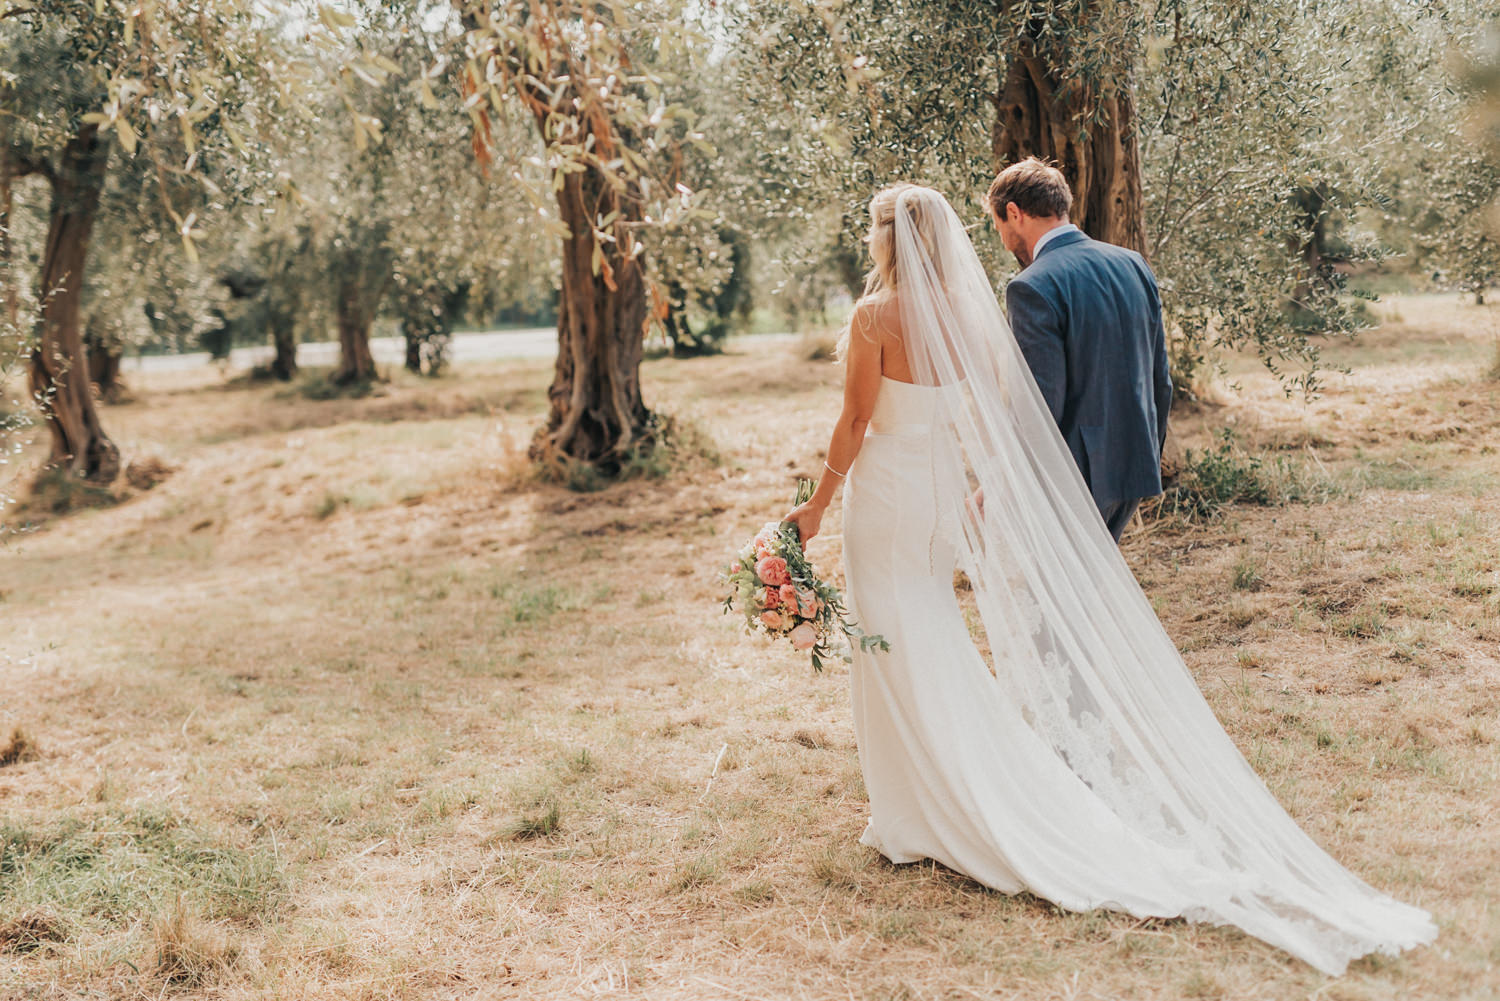 Tuscany-wedding-photographer-villa-ravano-Italy-destination-photography-